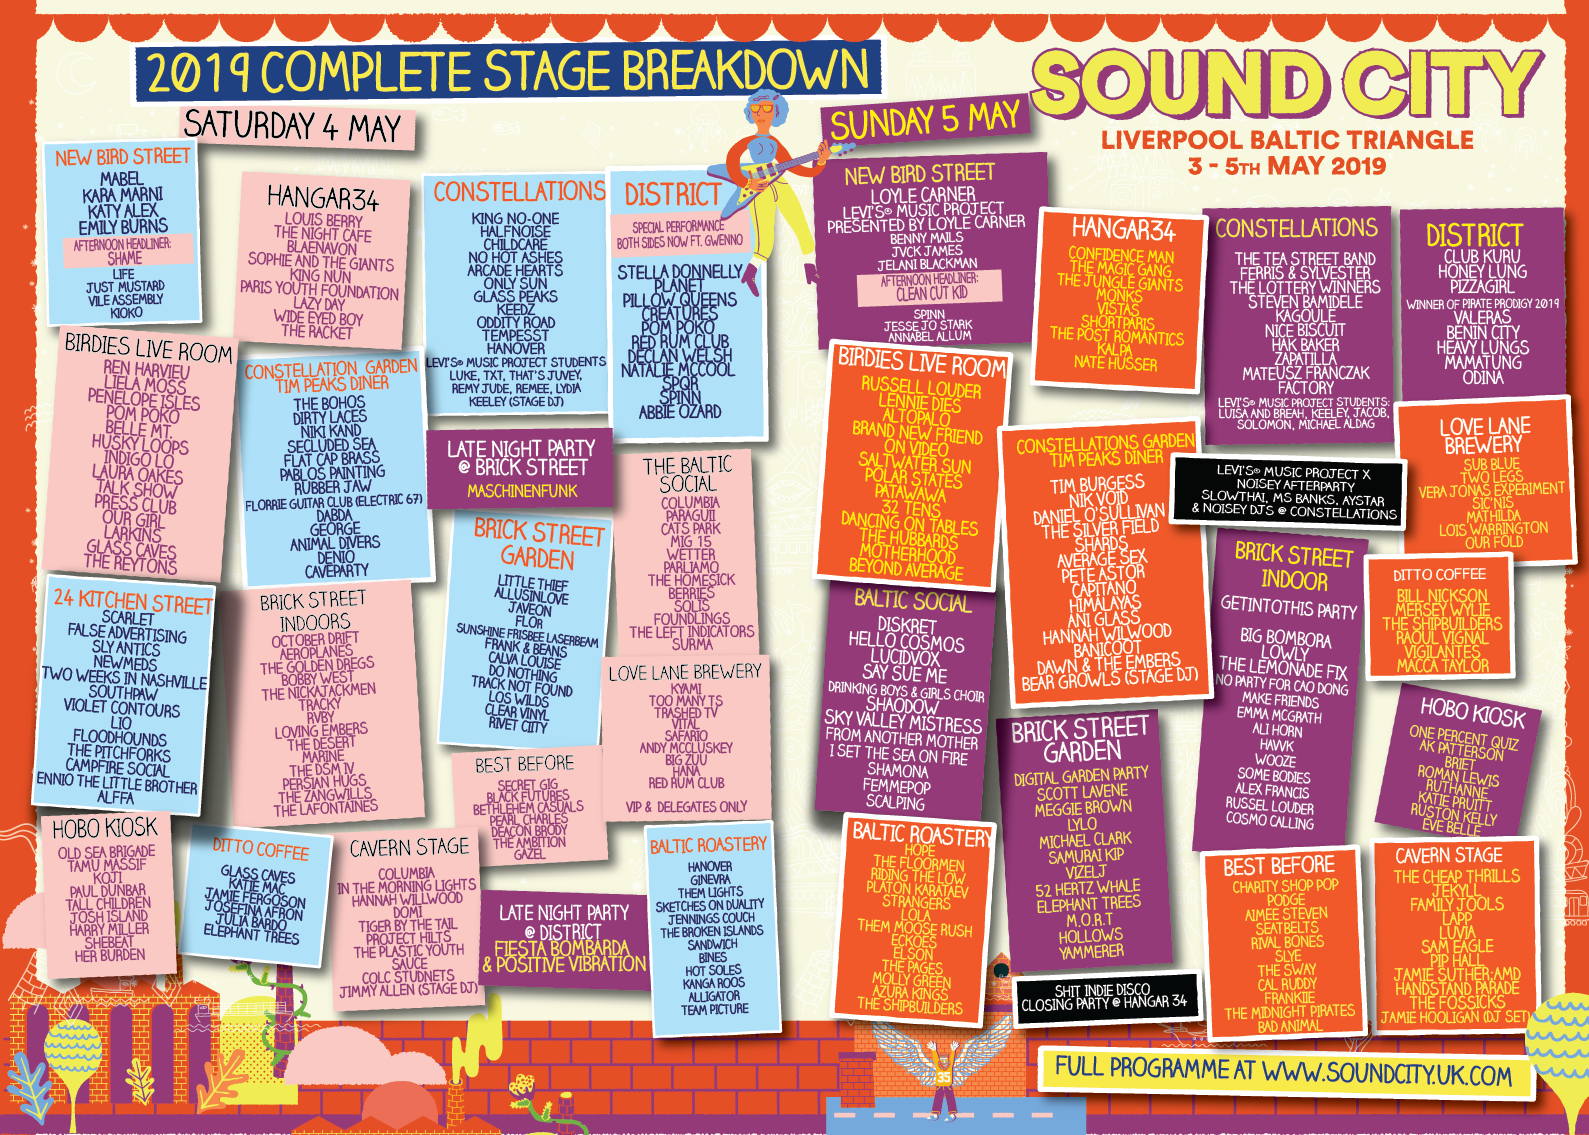 Liverpool Sound City 2019 venue guide and stage plan - exclusive